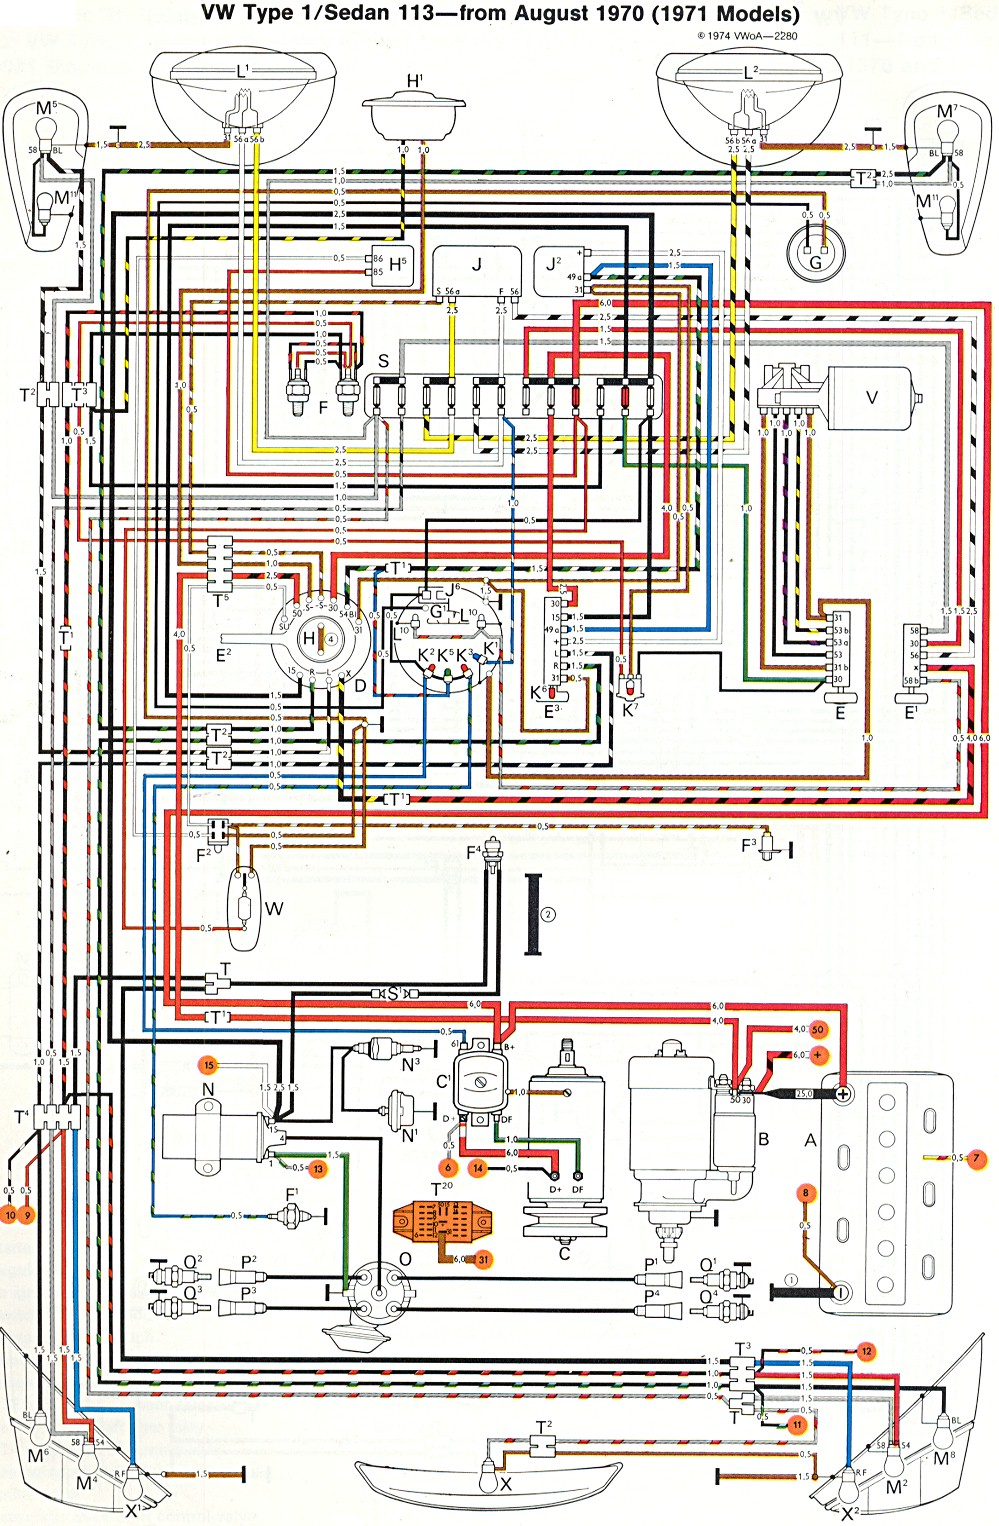 bug_super_71 1971 super beetle wiring diagram thegoldenbug com 1973 vw wiring diagram at n-0.co